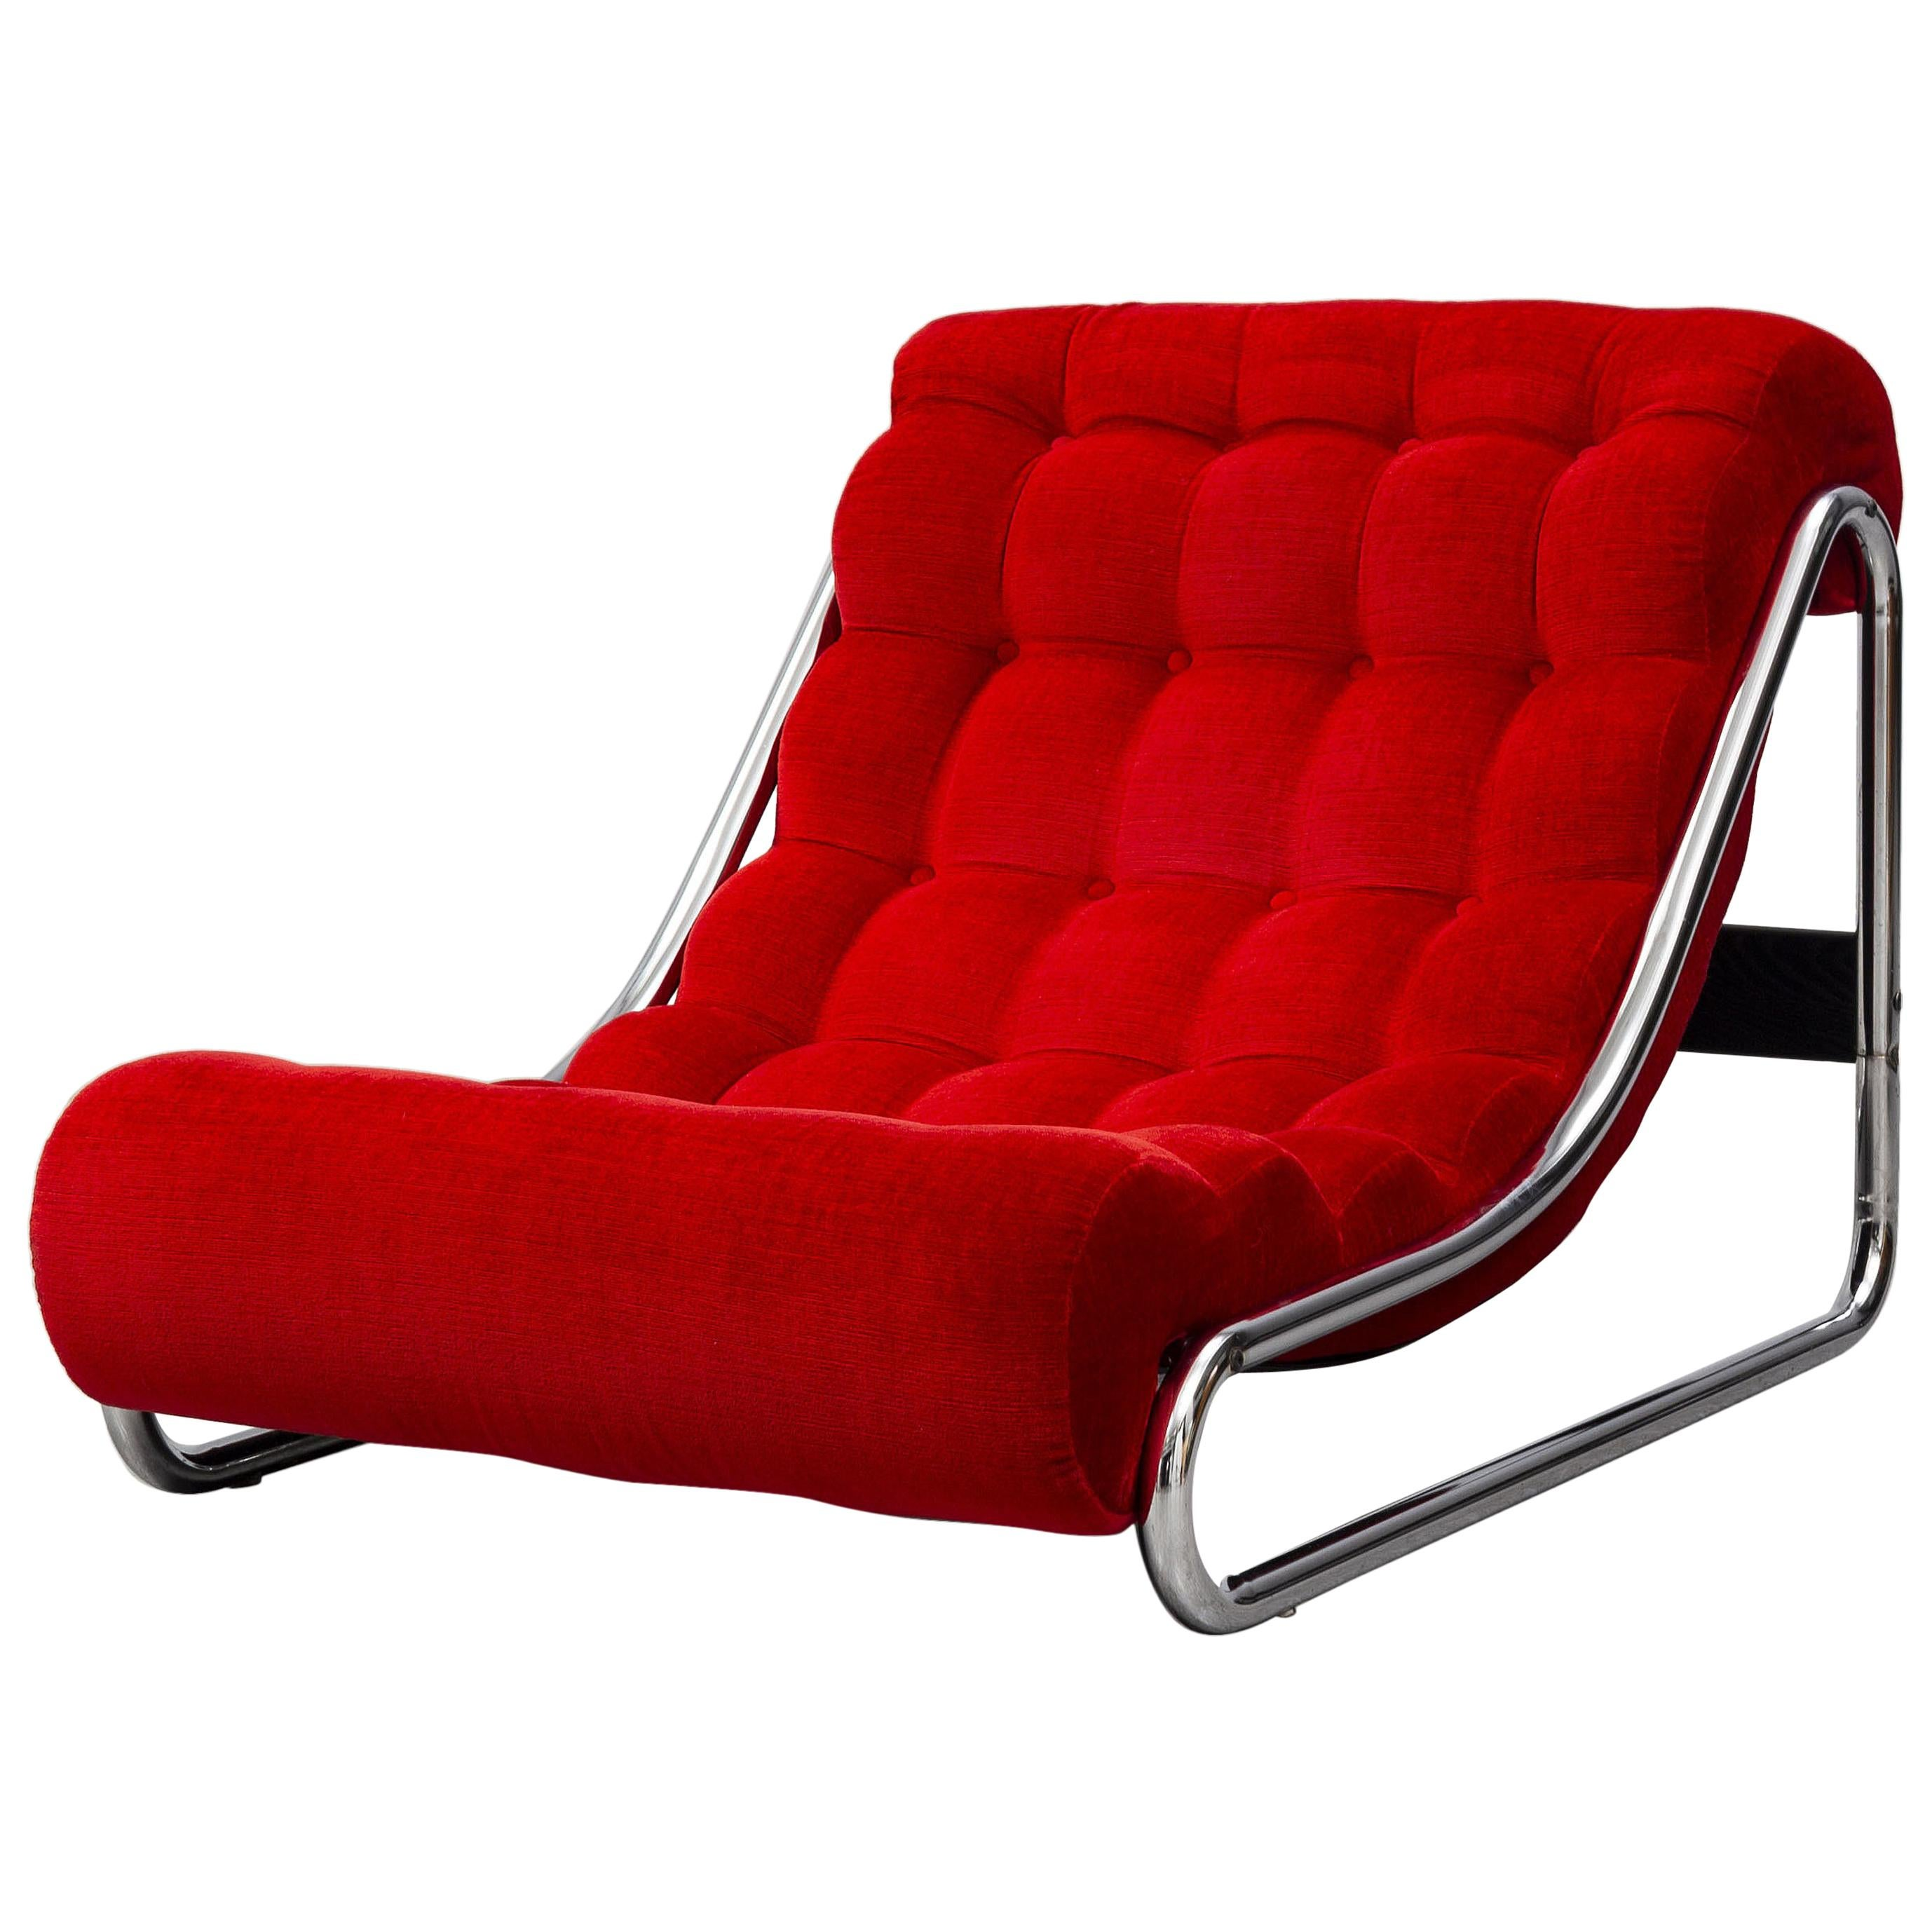 An 1970s Swedish Impala Red Easy Chair by Gillis Lundgren for IKEA